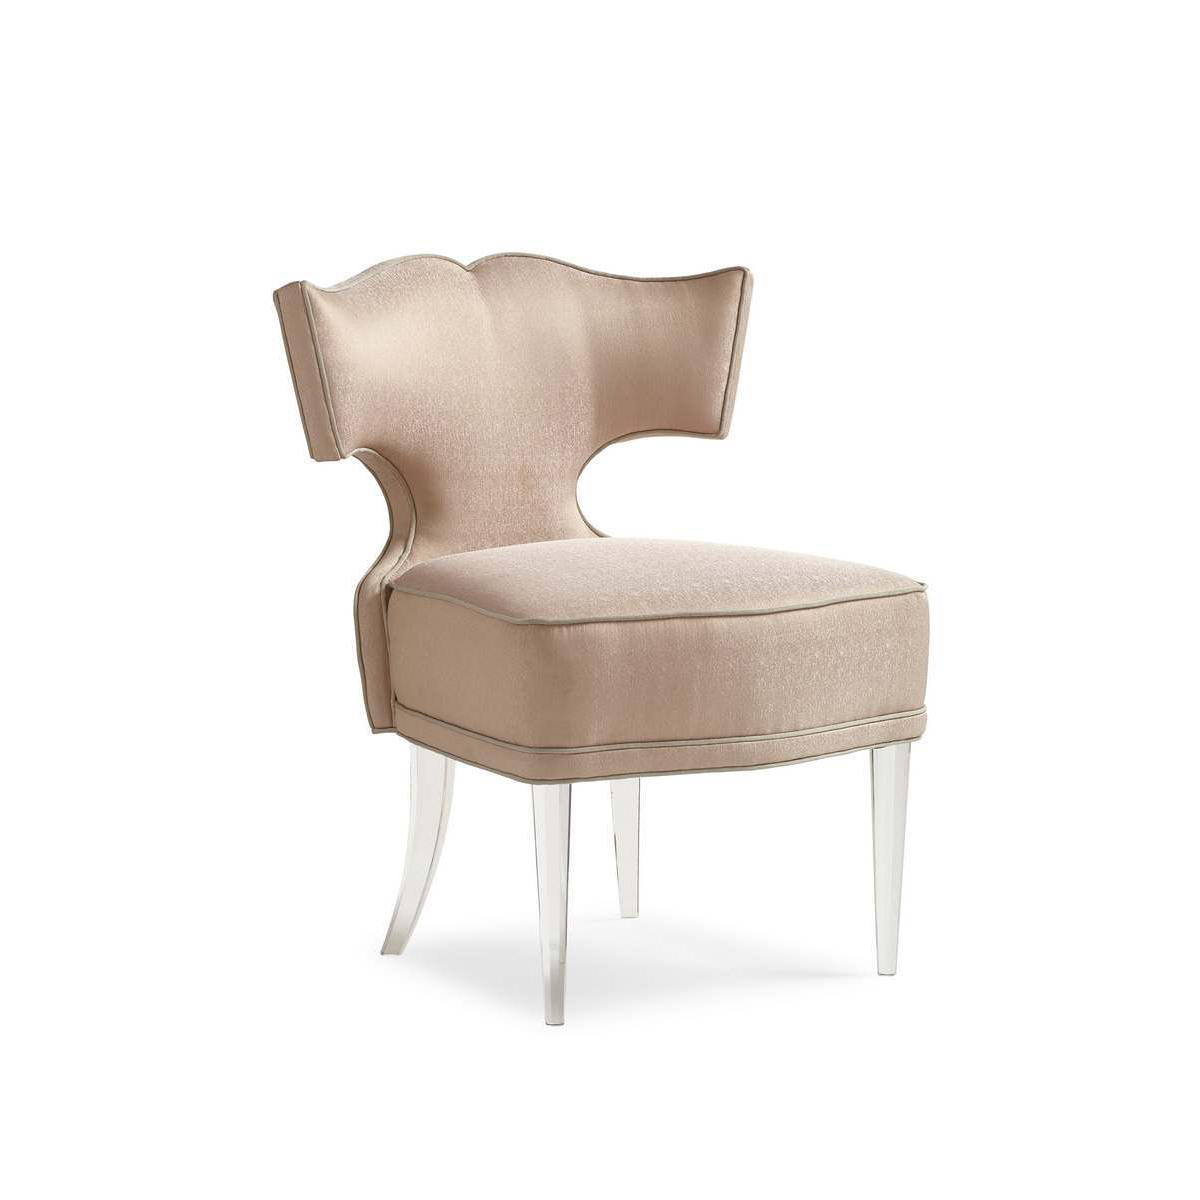 Acrylic Chair Caracole Facet Nating Glamorous Accent Chair With